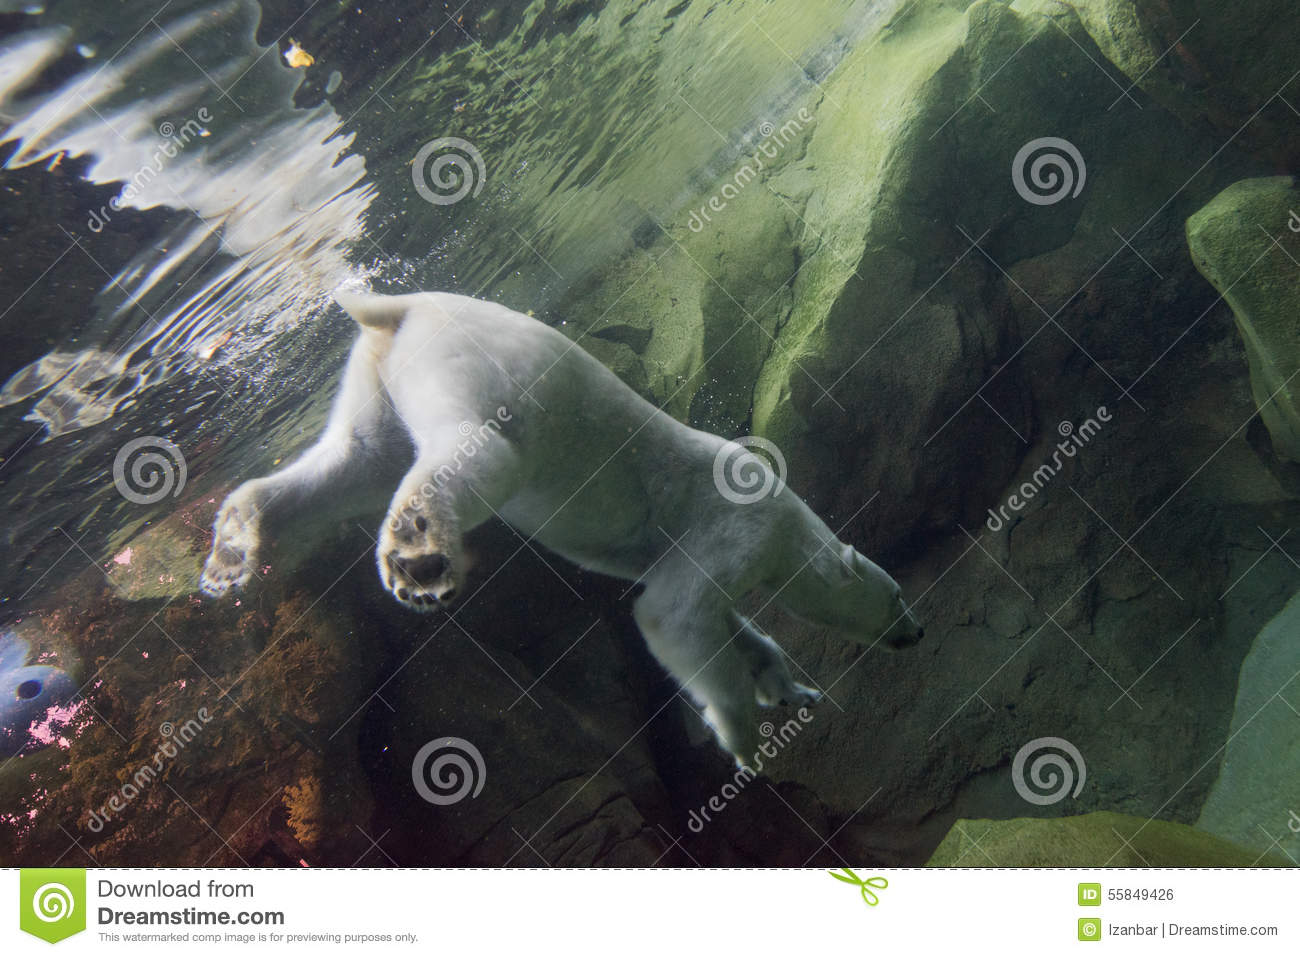 White bear underwater at the zoo